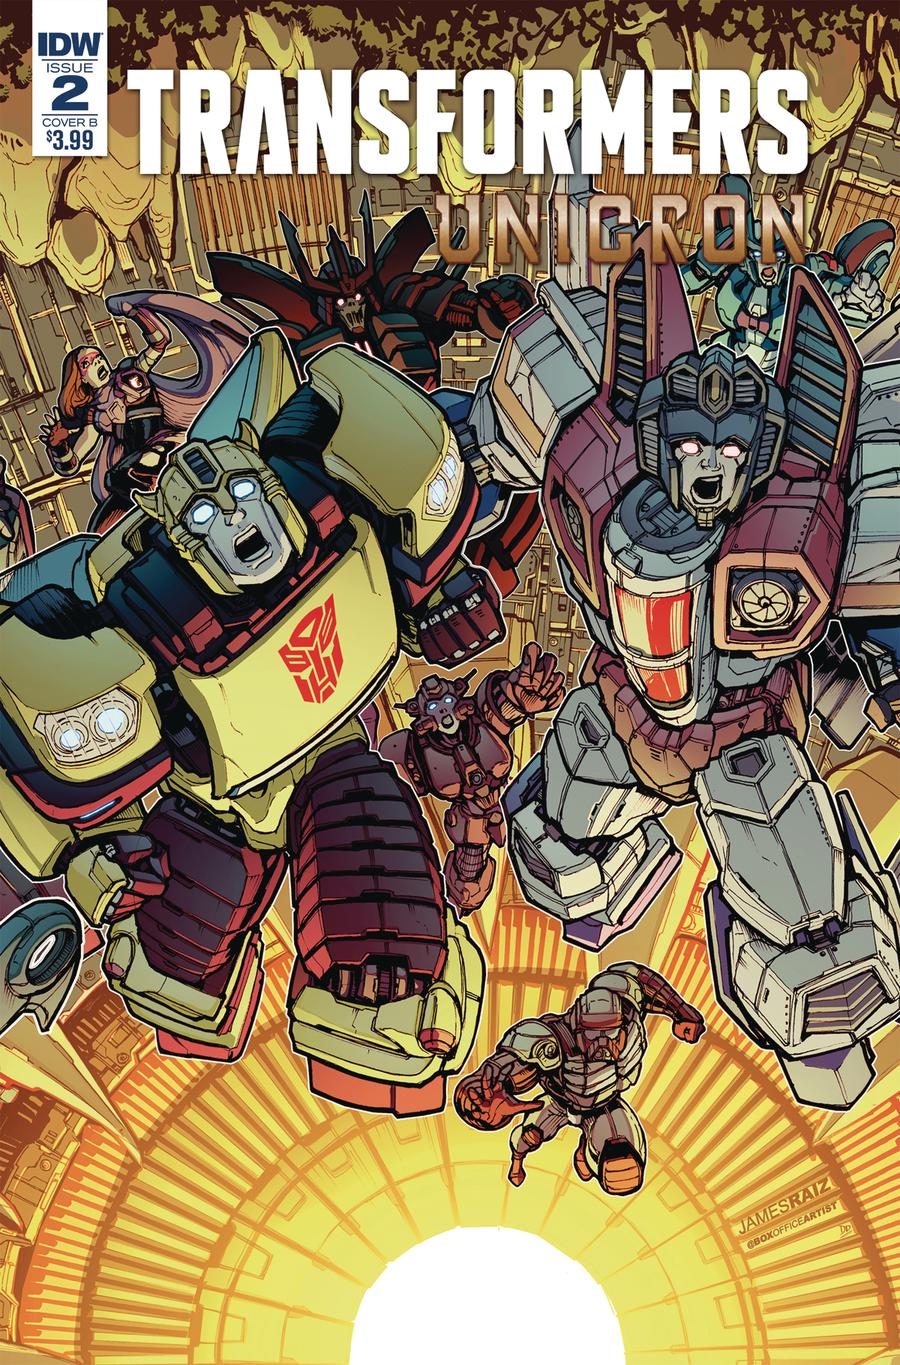 Transformers Unicron #2 Cover B Variant James Raiz Cover